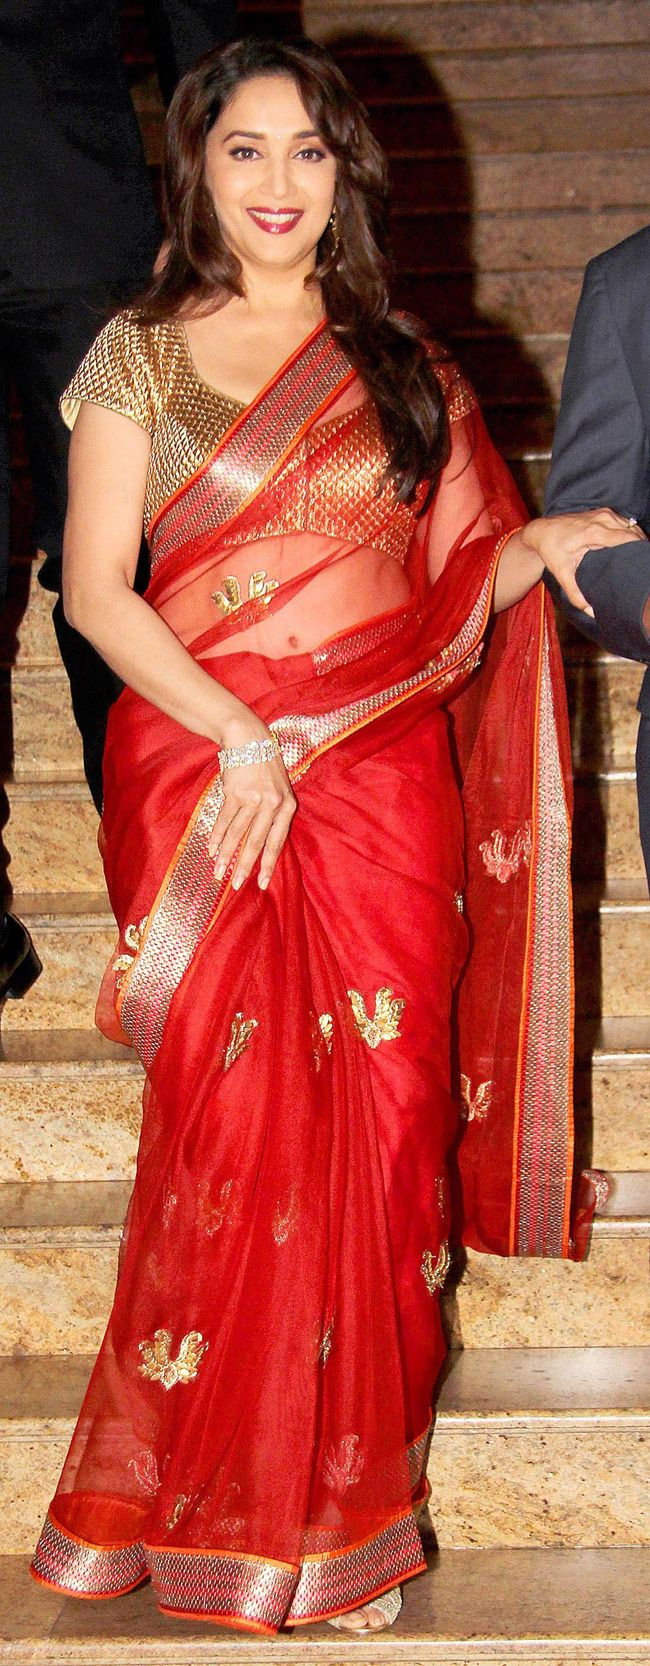 Madhuri Dixit  at the launch of Dilip Kumar's autobiography.